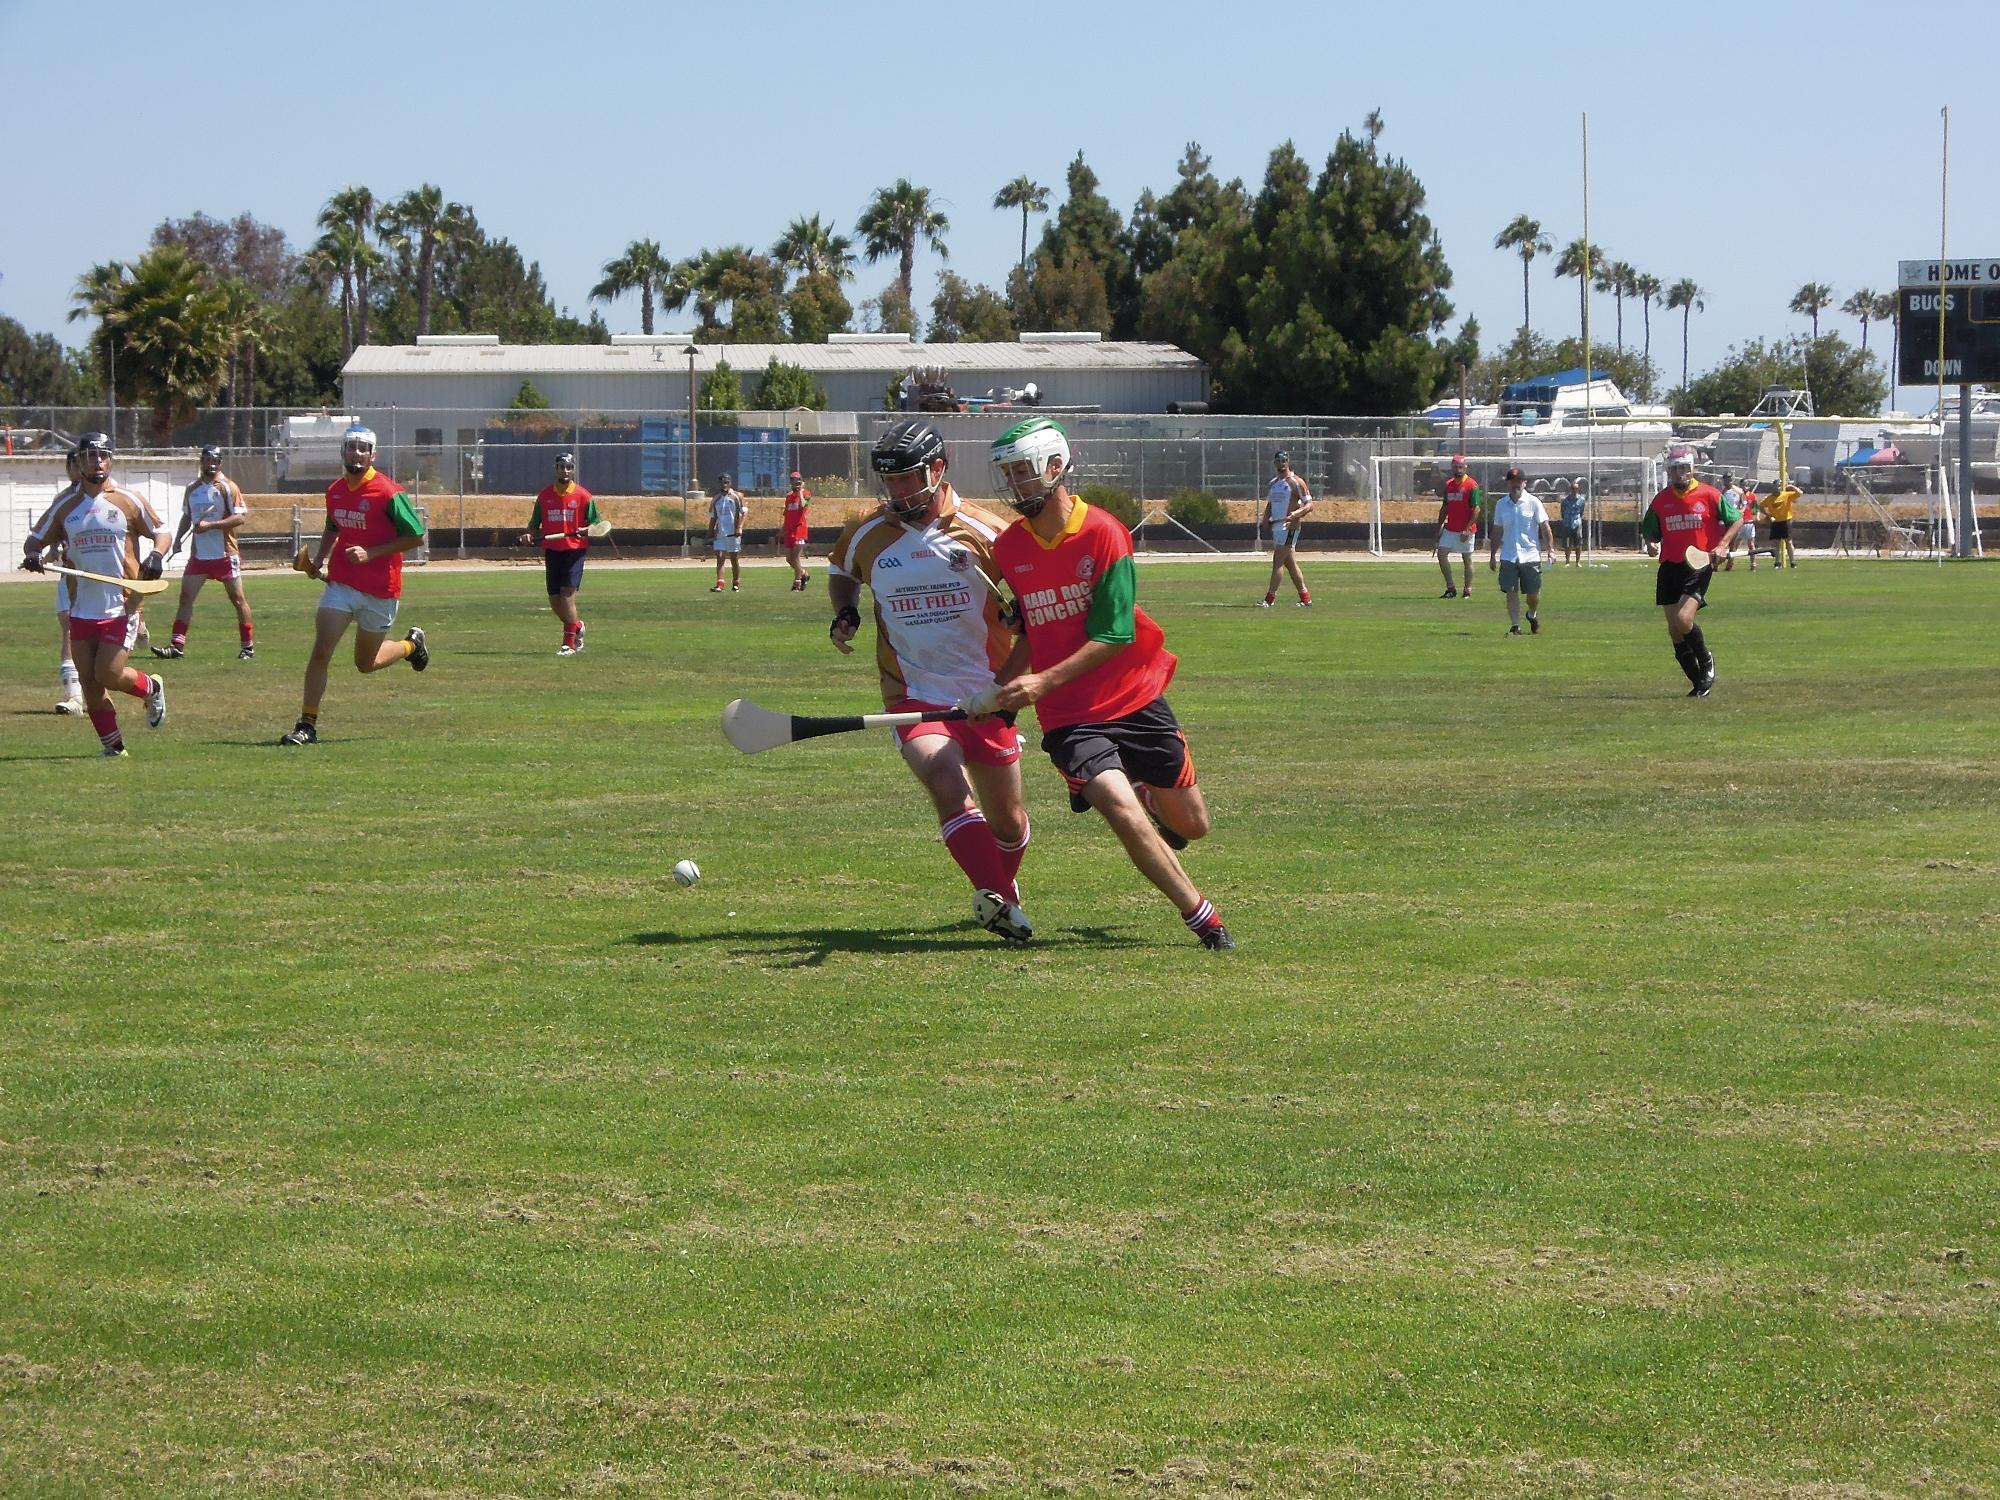 St. Peter's San Diego Hurling – First Home Game